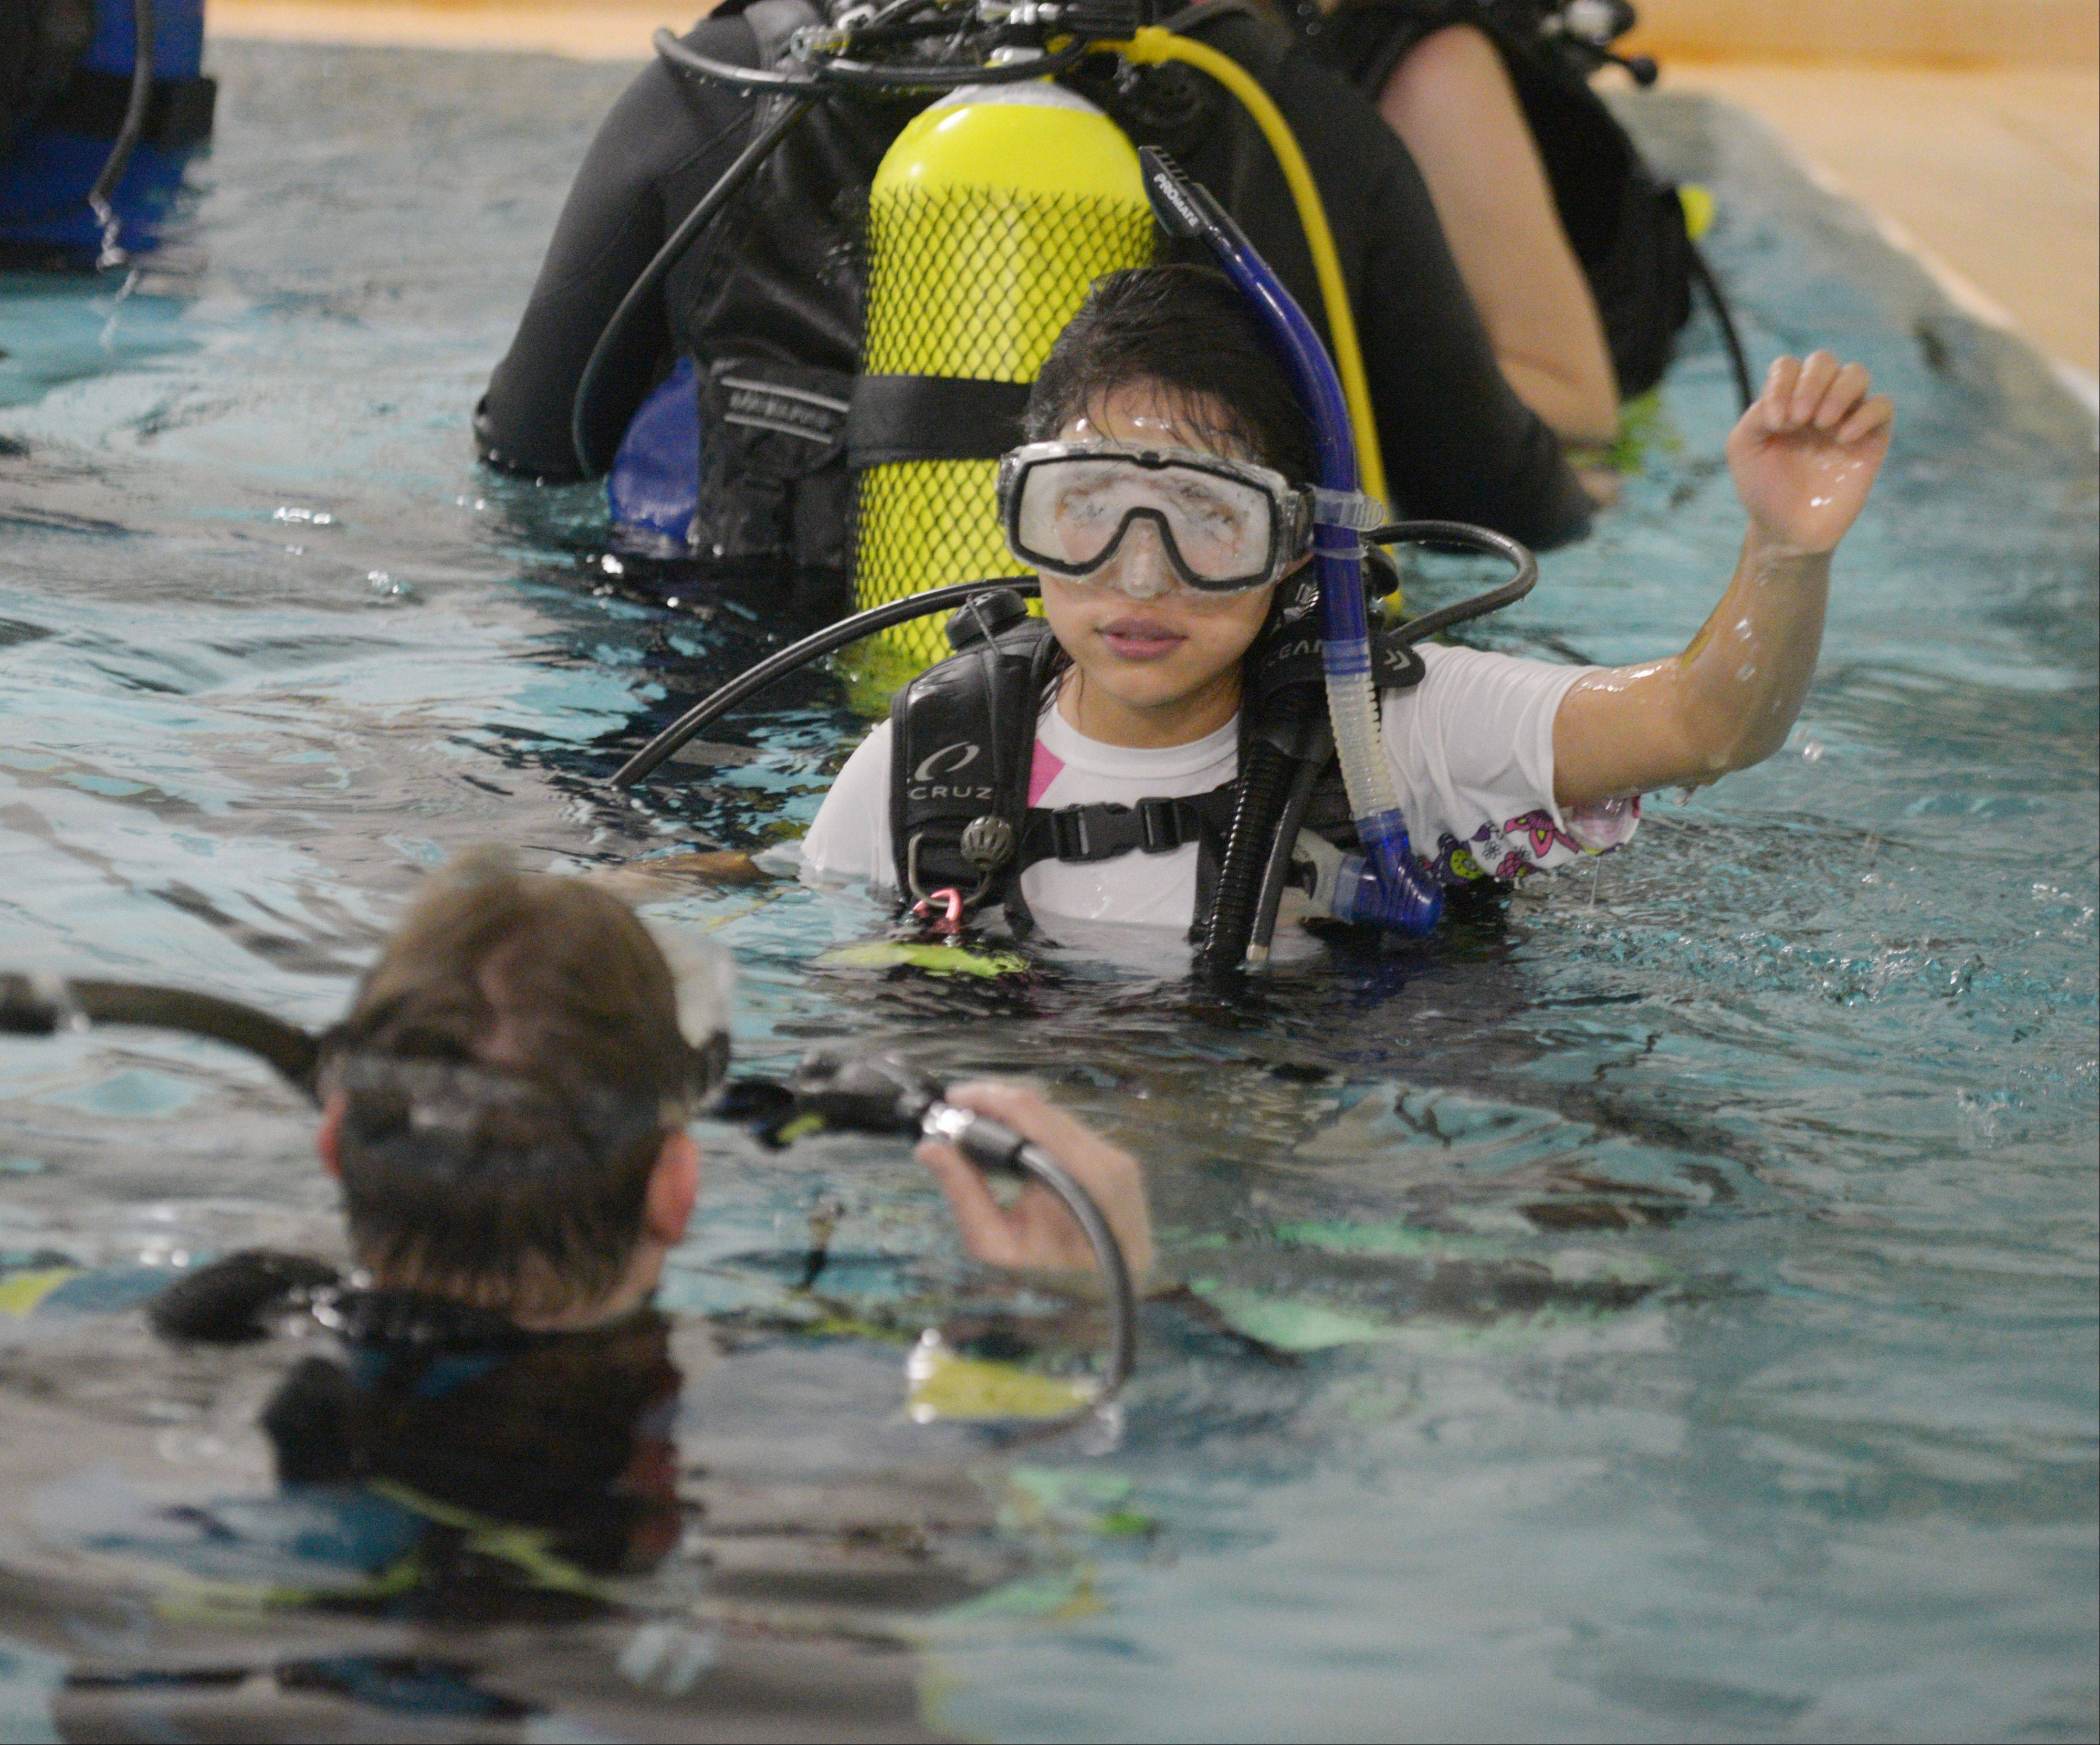 Phil Seils of Buffalo Grove instructs Katia Carrilo of Aurora as she practices scuba diving hand signals Saturday in Aurora during a one-day scuba program offered by Triple Threat Mentoring and S.T.A.R.S. International, a scuba instruction nonprofit.